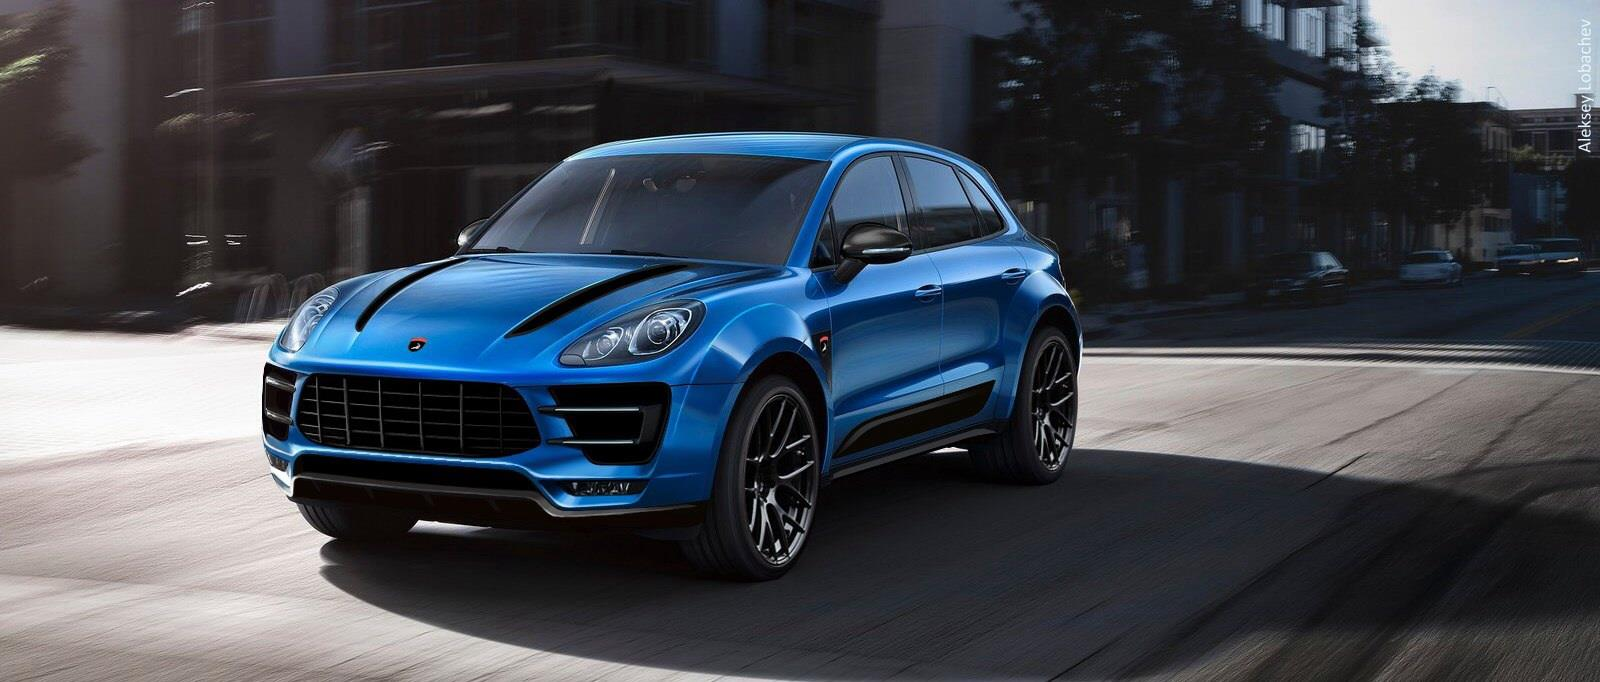 Porsche Macan Wide Body Kit Already Being Developed By